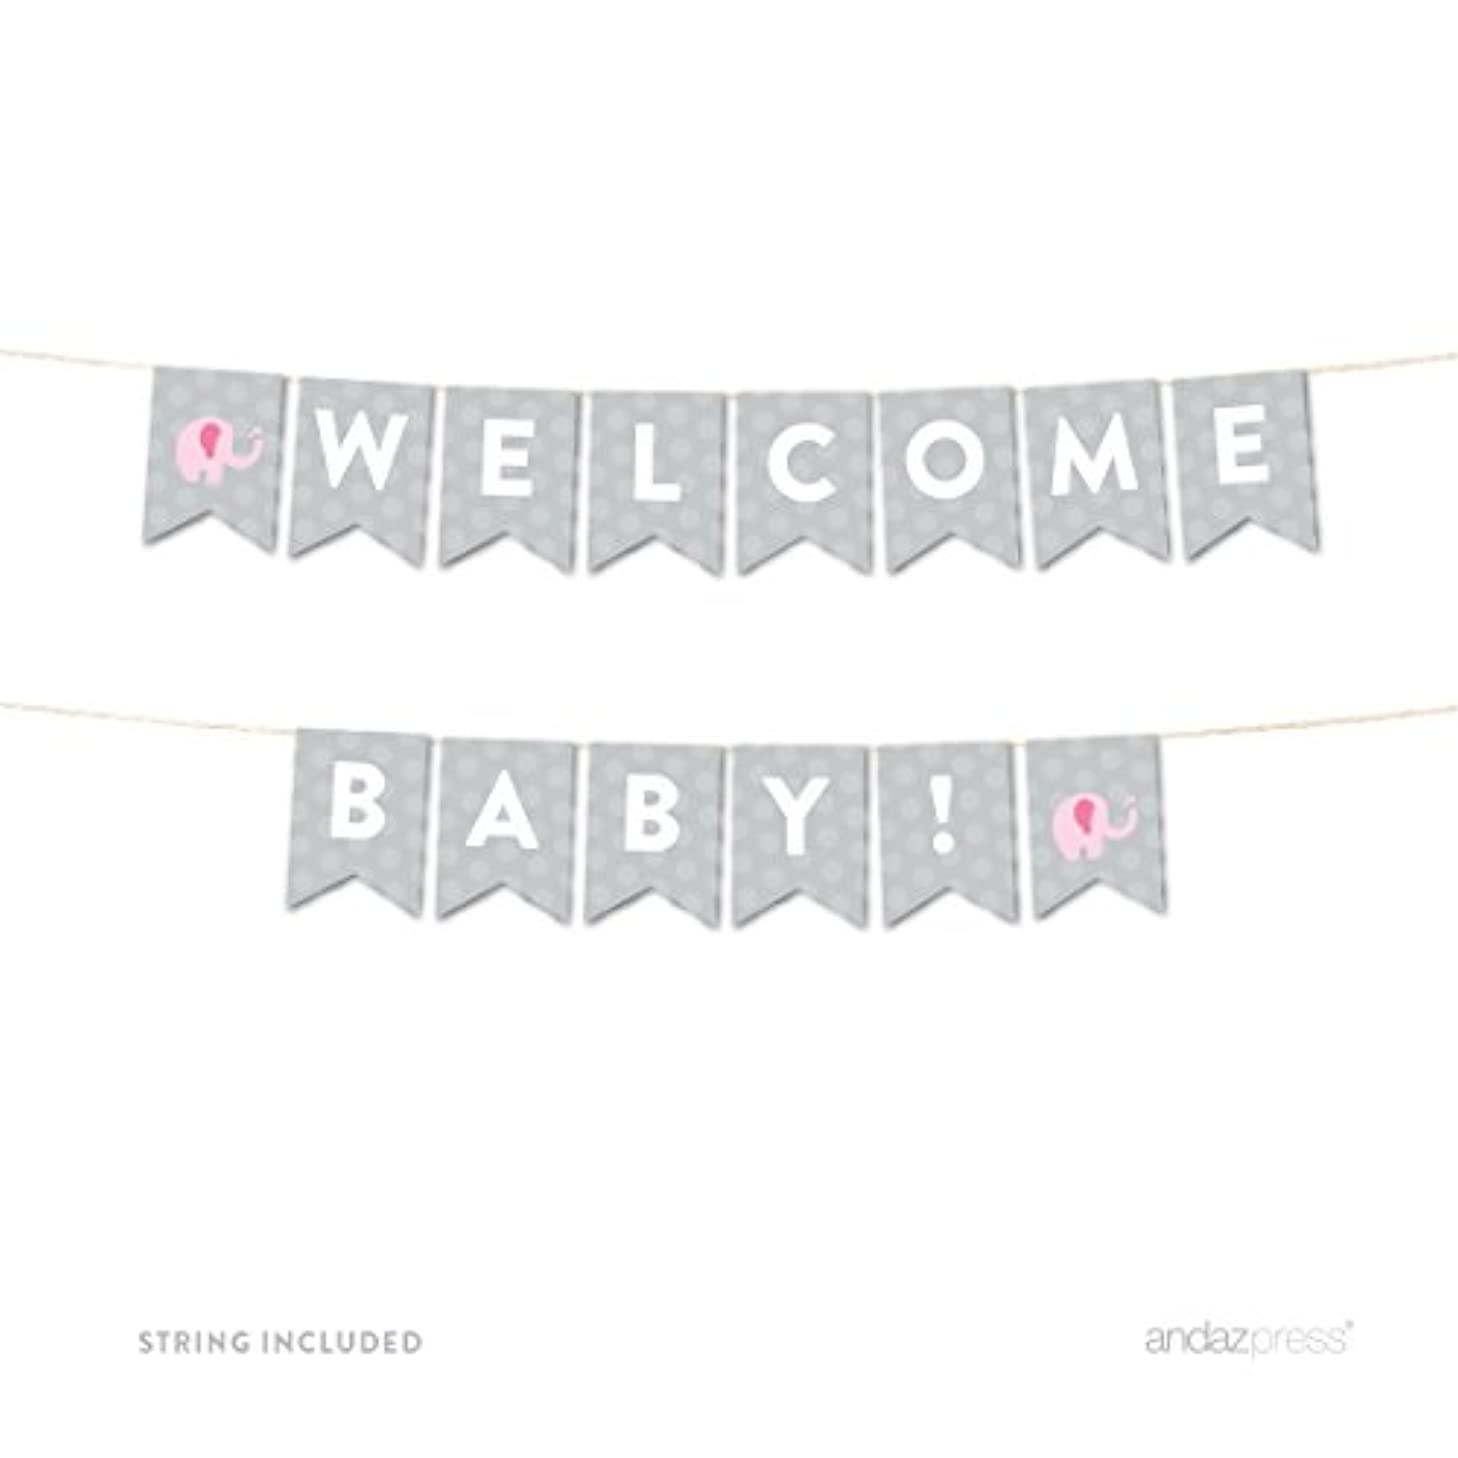 Andaz Press Girl Elephant Baby Shower Collection, Hanging Pennant Party Banner with String, Welcome Baby!, 5-Feet, 1-Set, Decor Paper Decorations